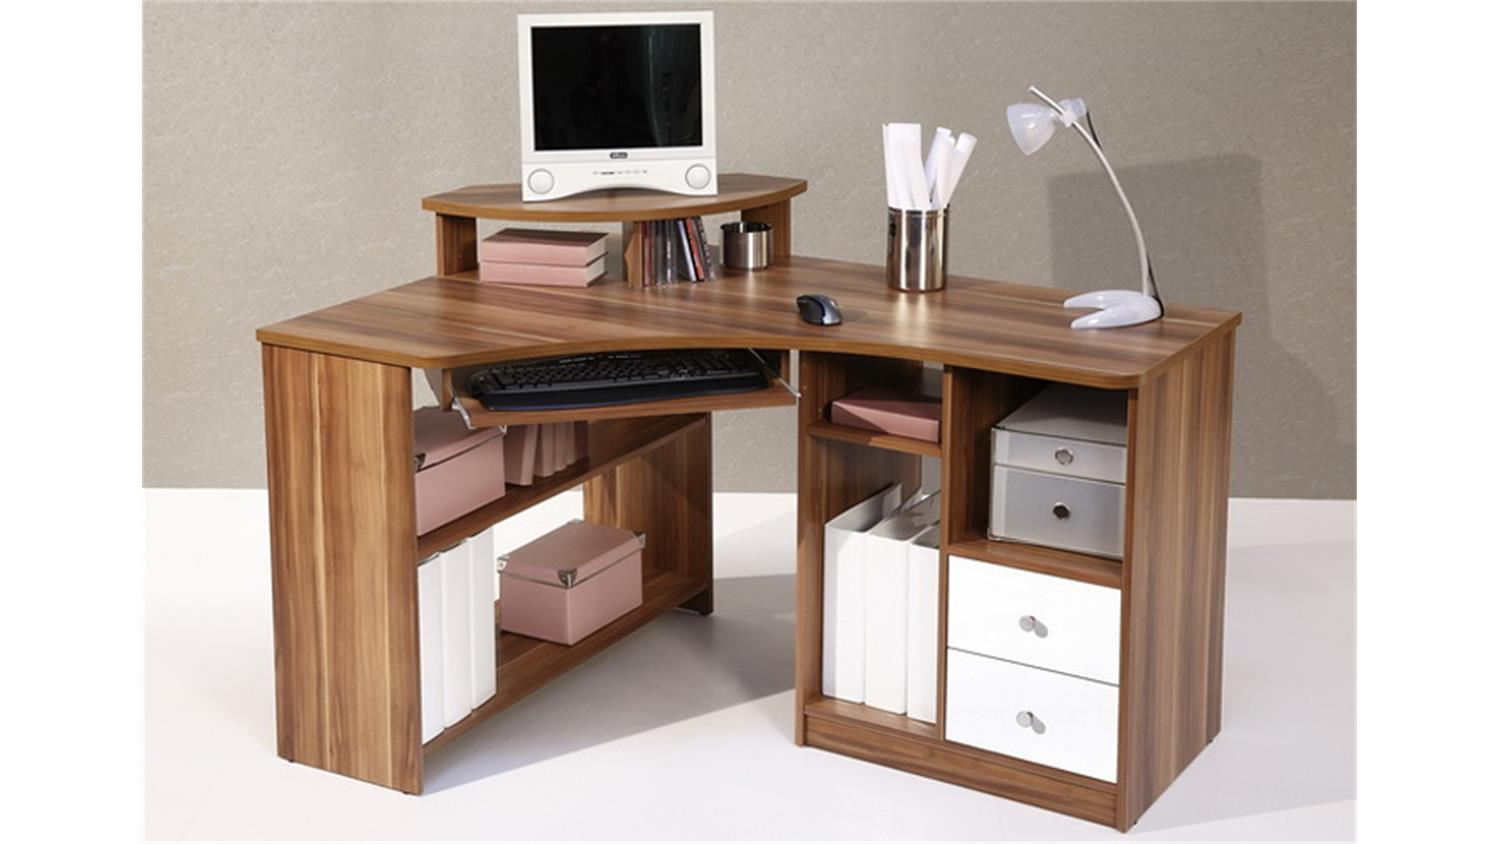 eckschreibtisch f r computer bestseller shop f r m bel und einrichtungen. Black Bedroom Furniture Sets. Home Design Ideas